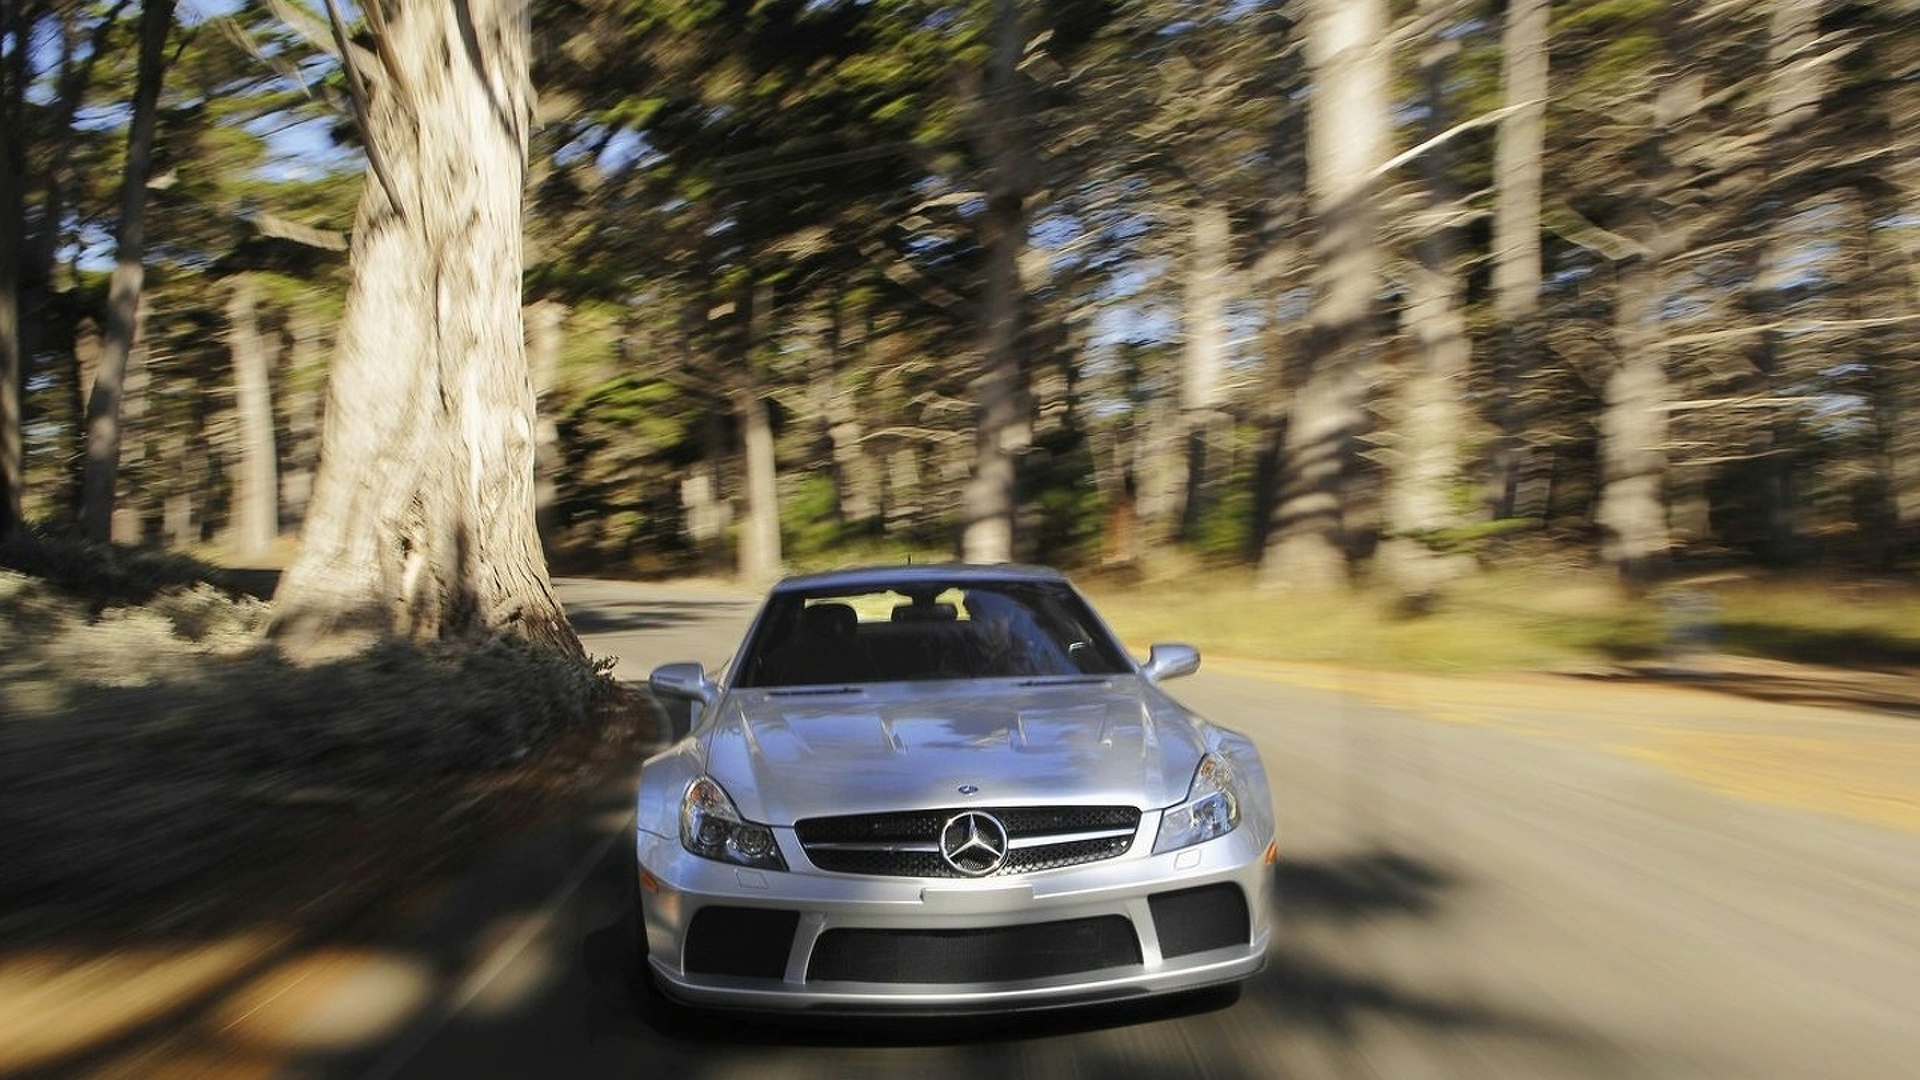 Mercedes SL 65 AMG Black Series on Video